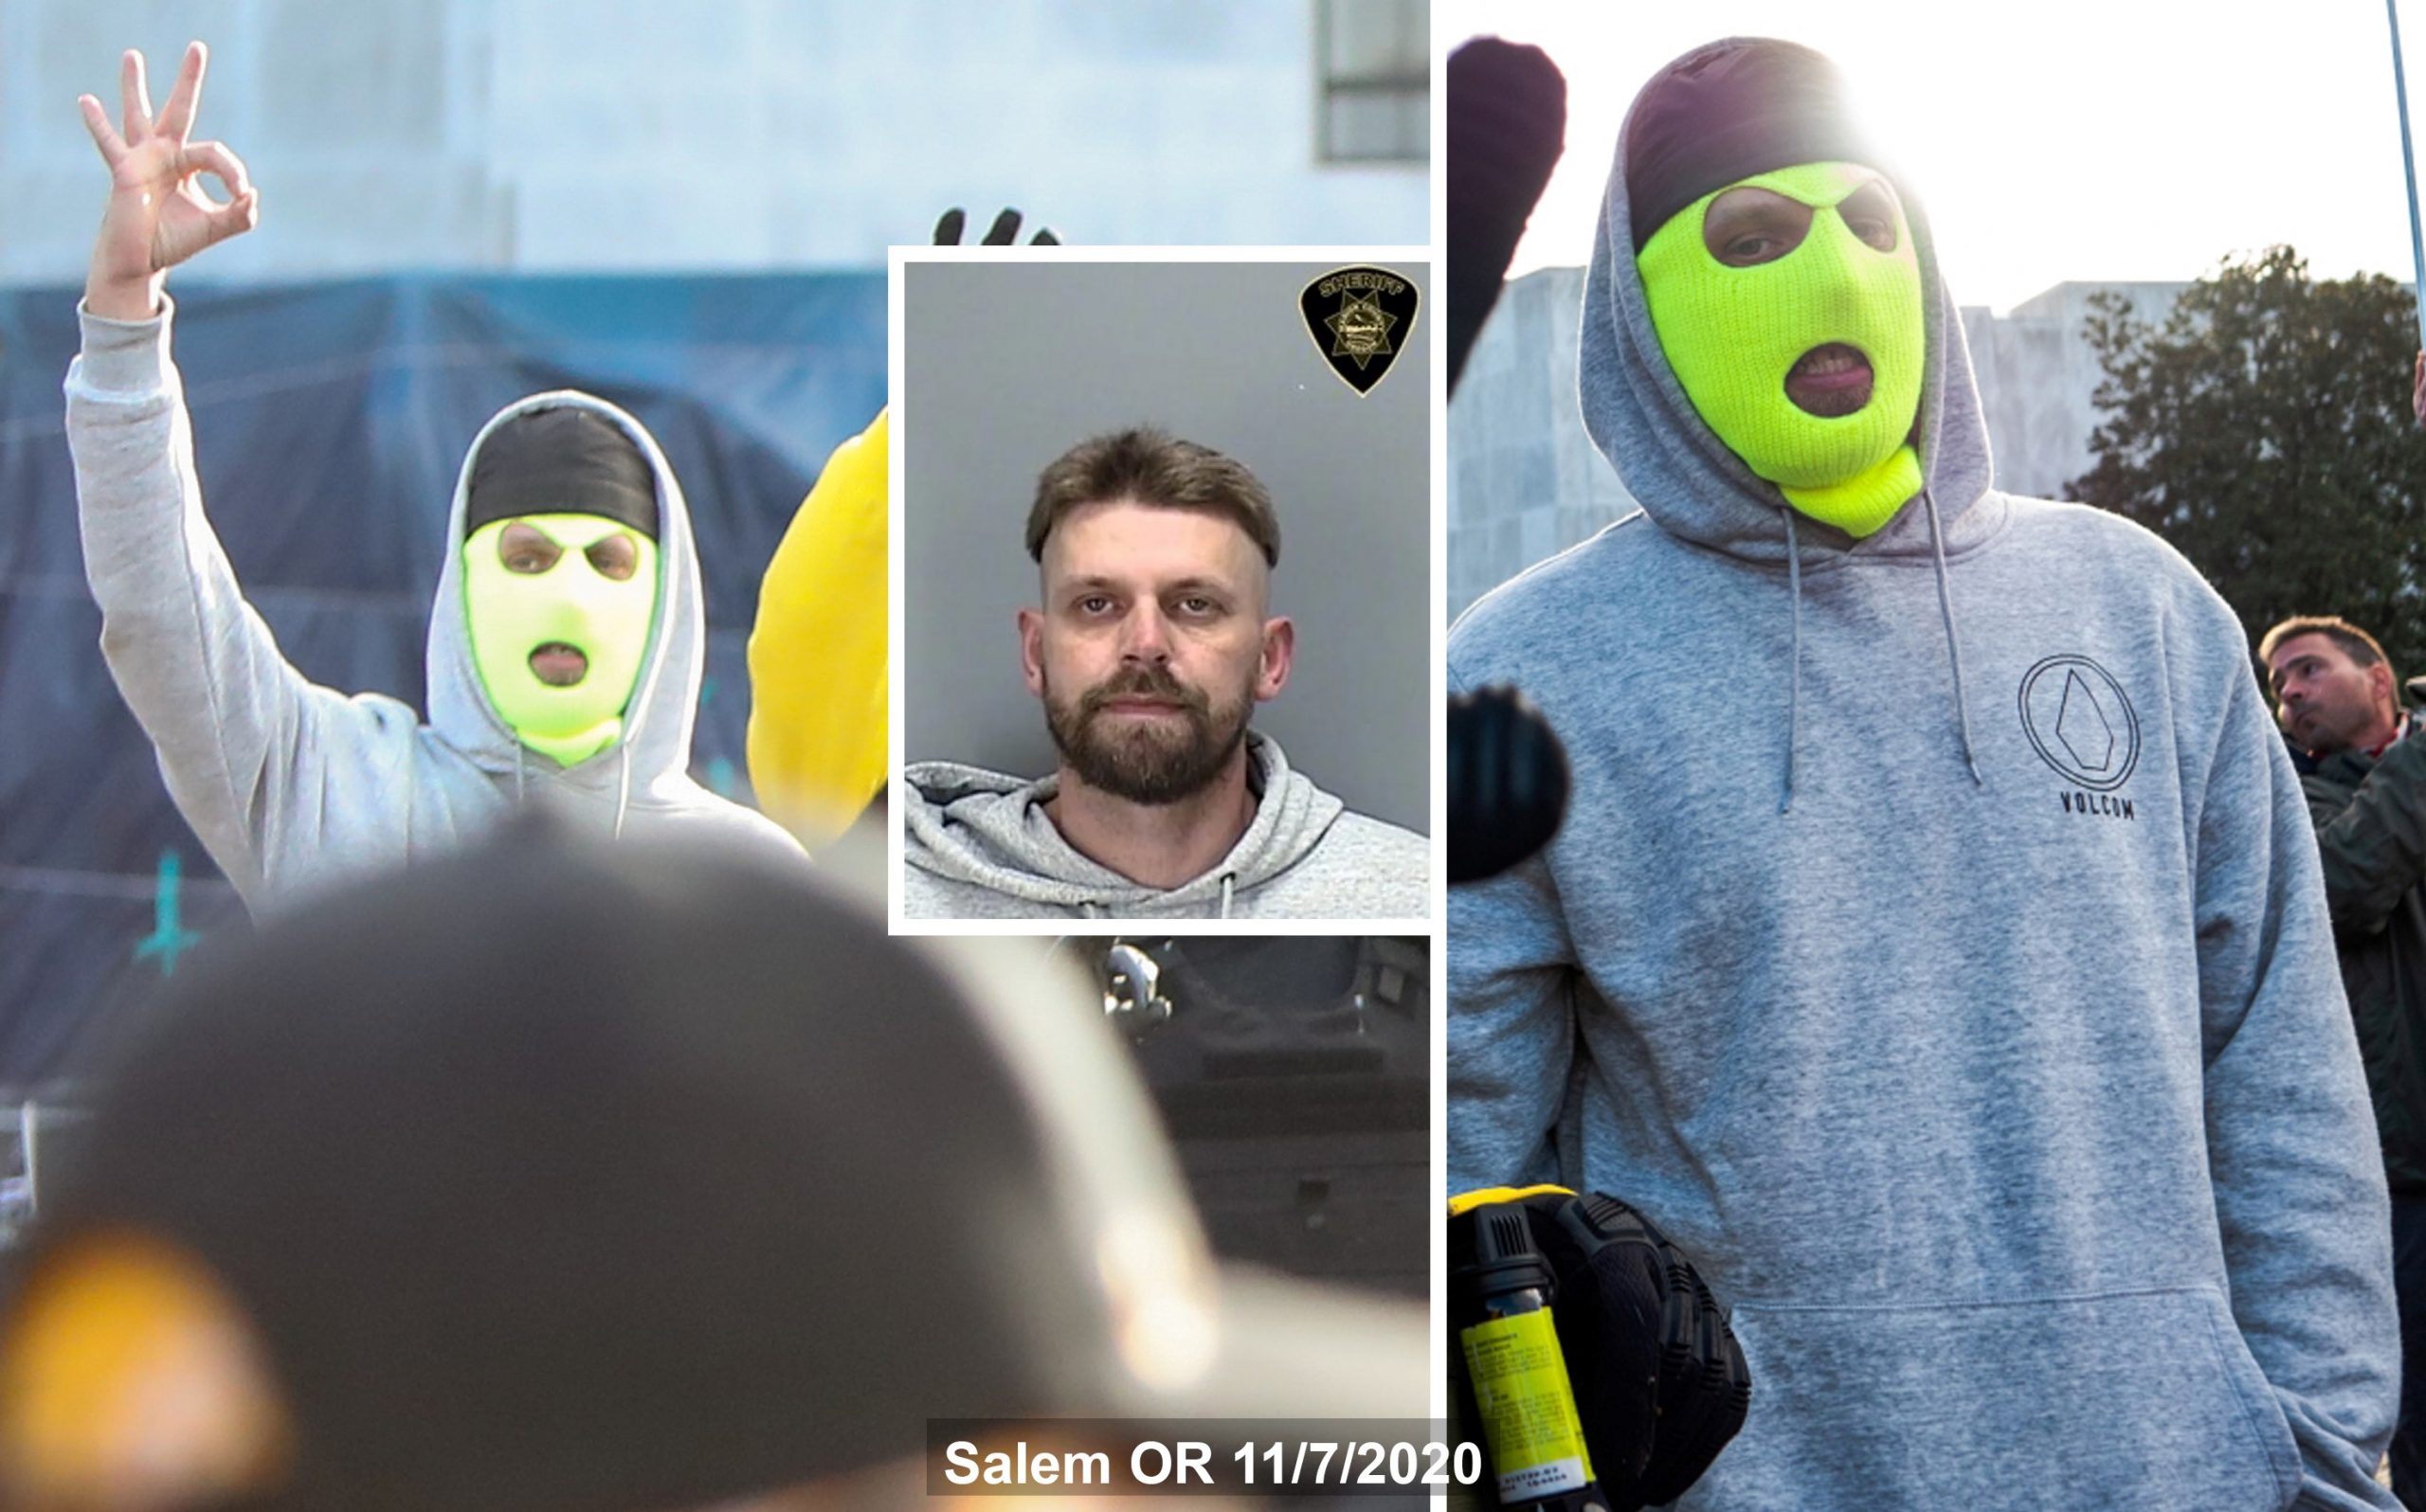 three pics of Jeffrey Mustin on 11/7 in Salem Oregon. Two show him wearing a green ski mask, the third is a mugshot from his arrest.